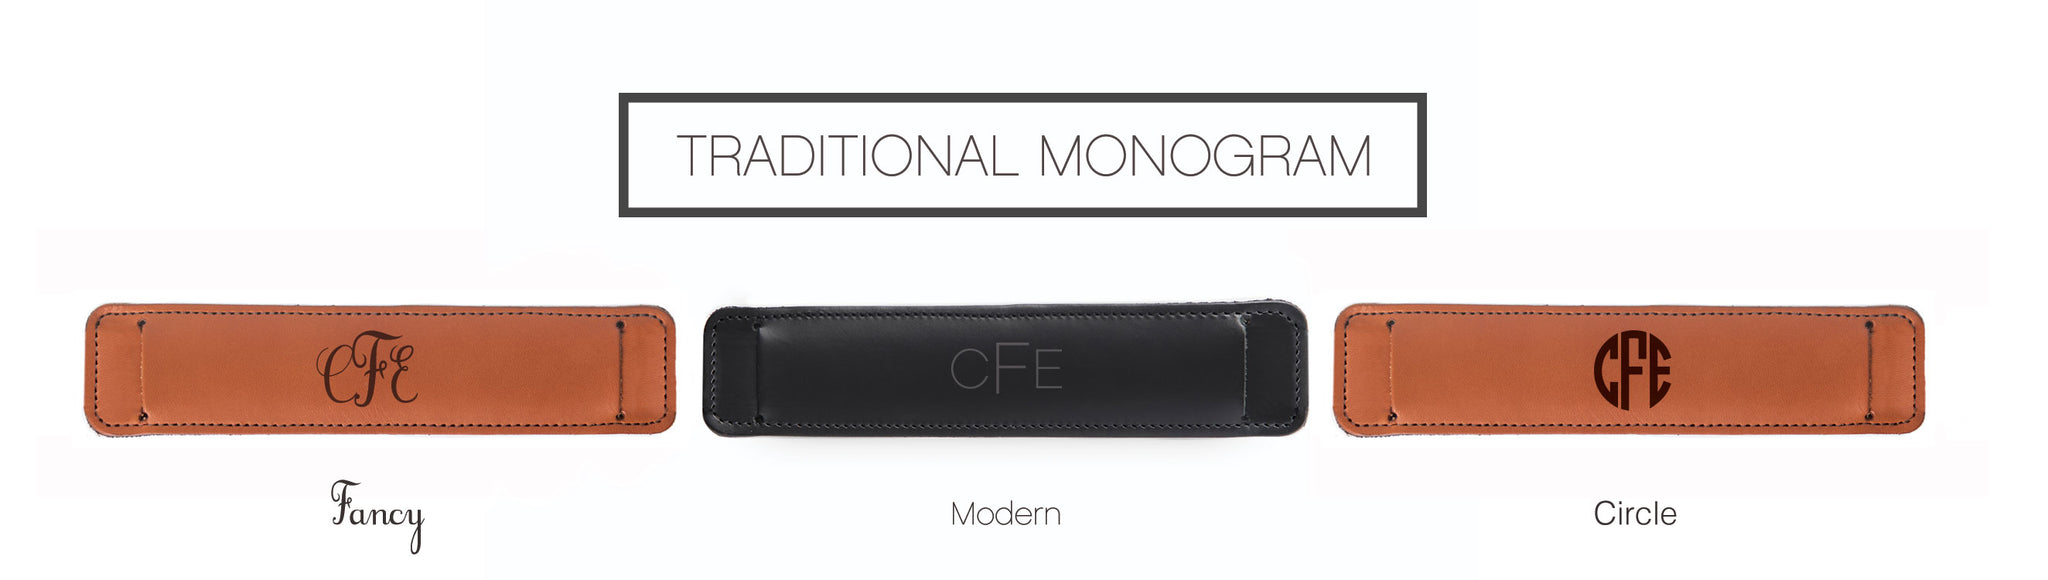 Traditional Monogram Personalization Options